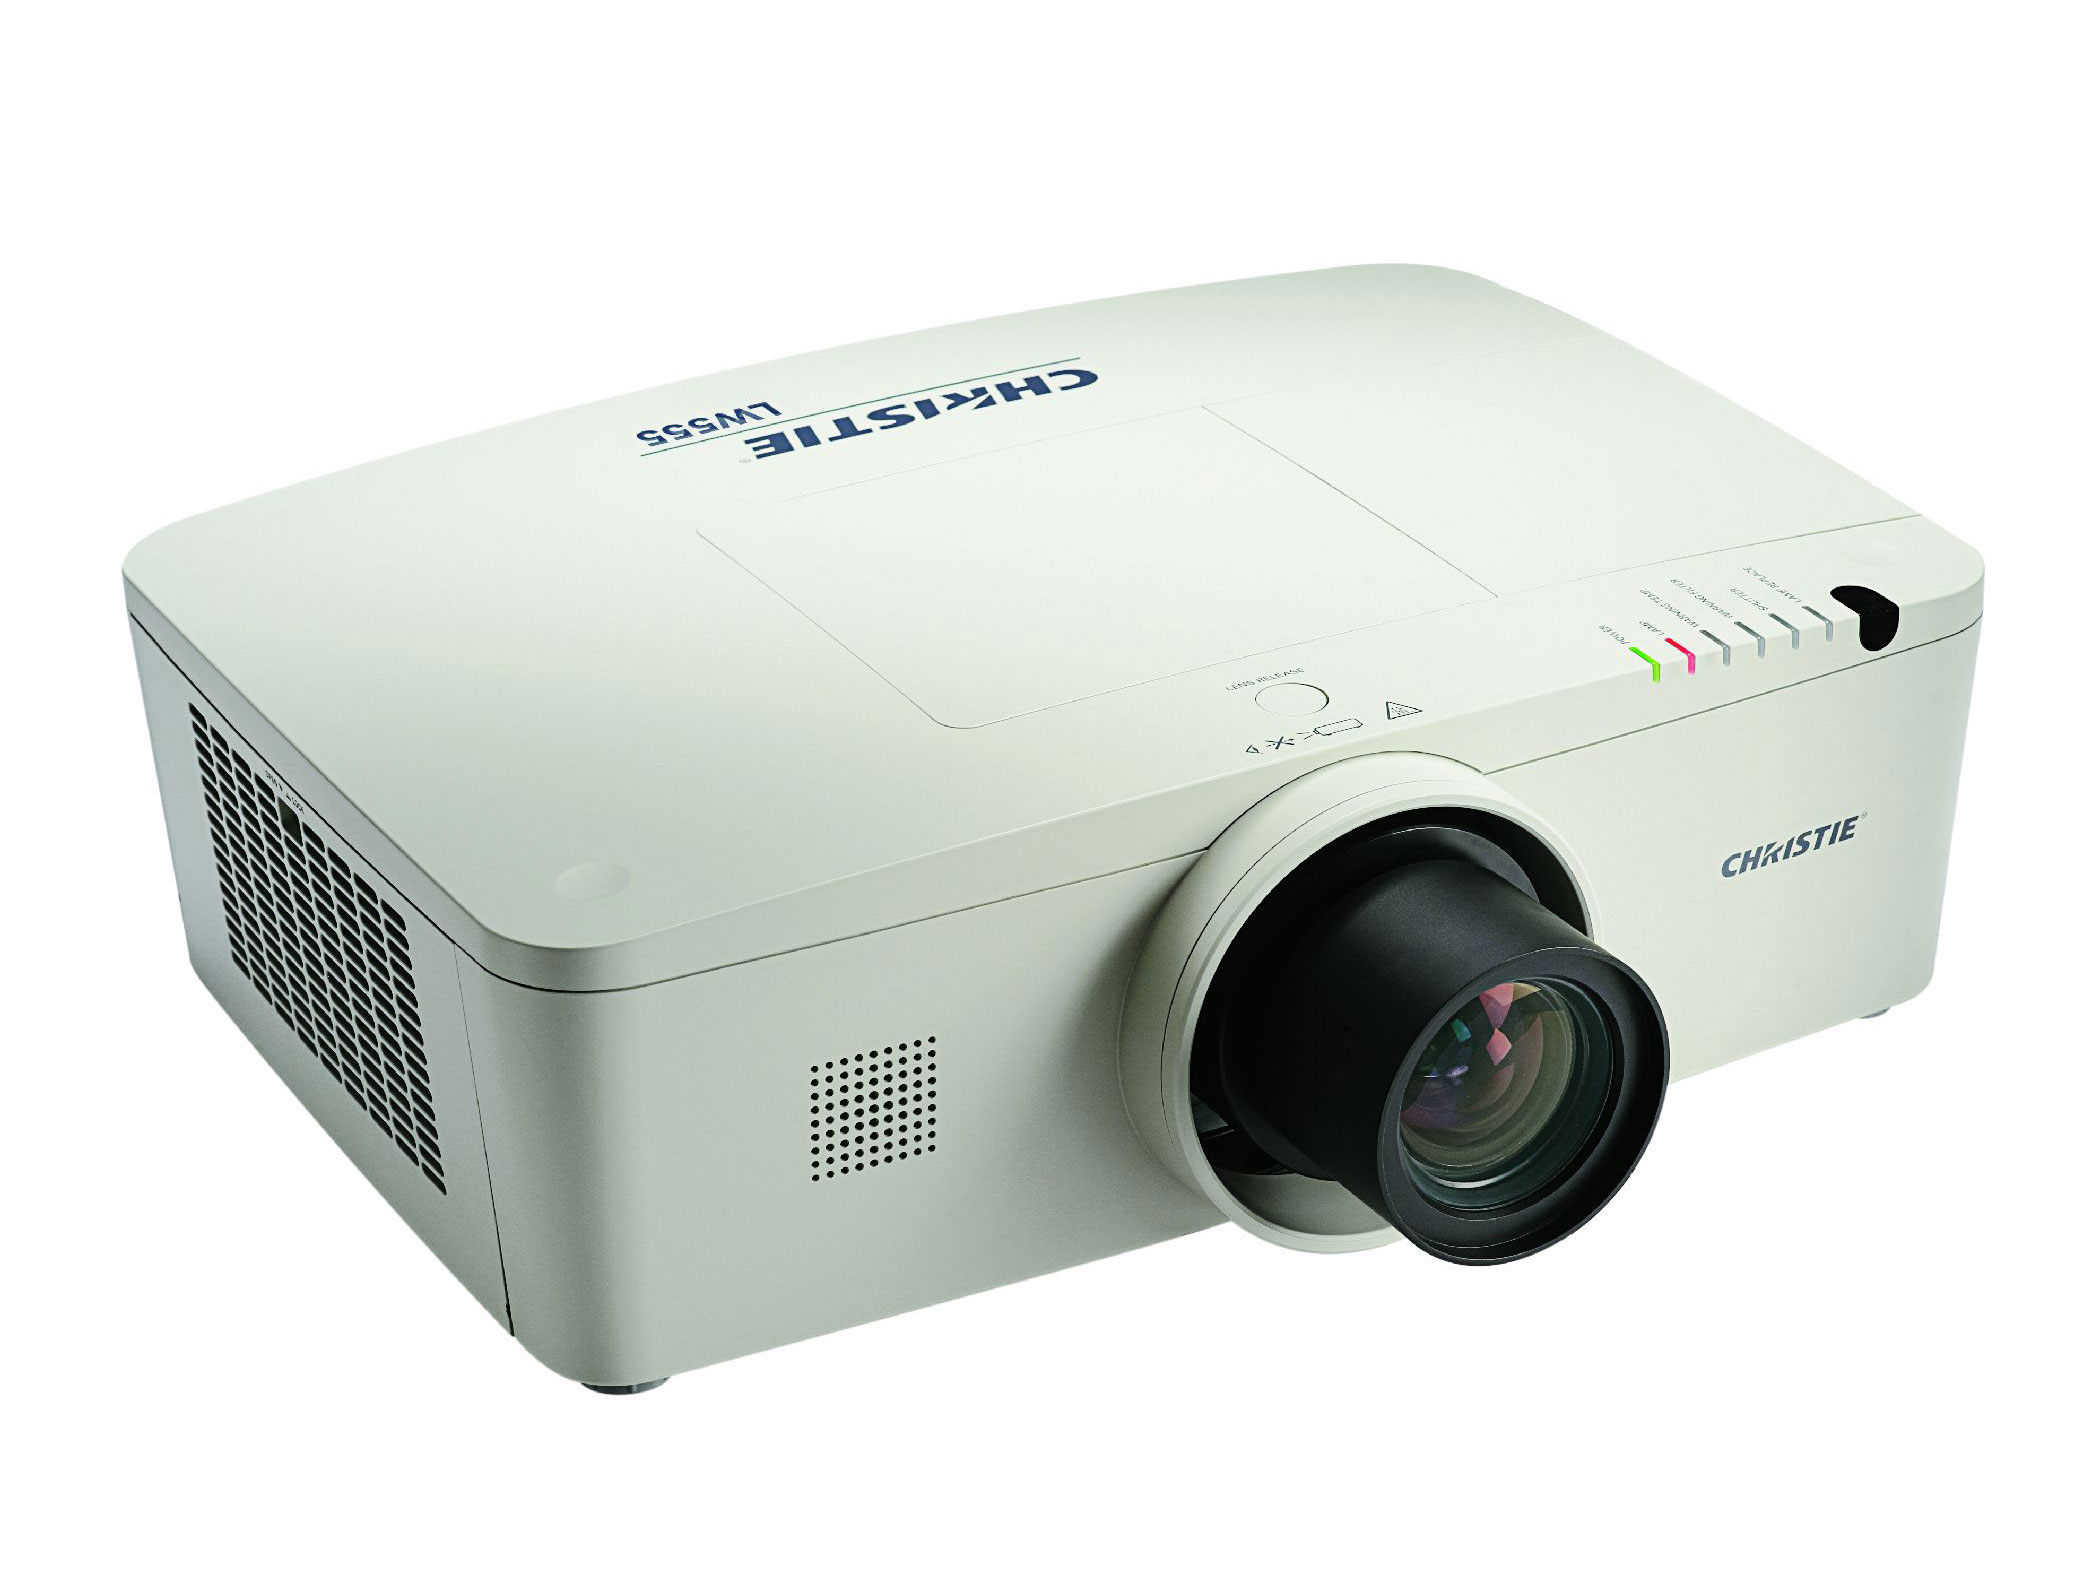 /globalassets/.catalog/products/images/christie-lw555/gallery/christie-lw555-lcd-digital-projector-image6.jpg